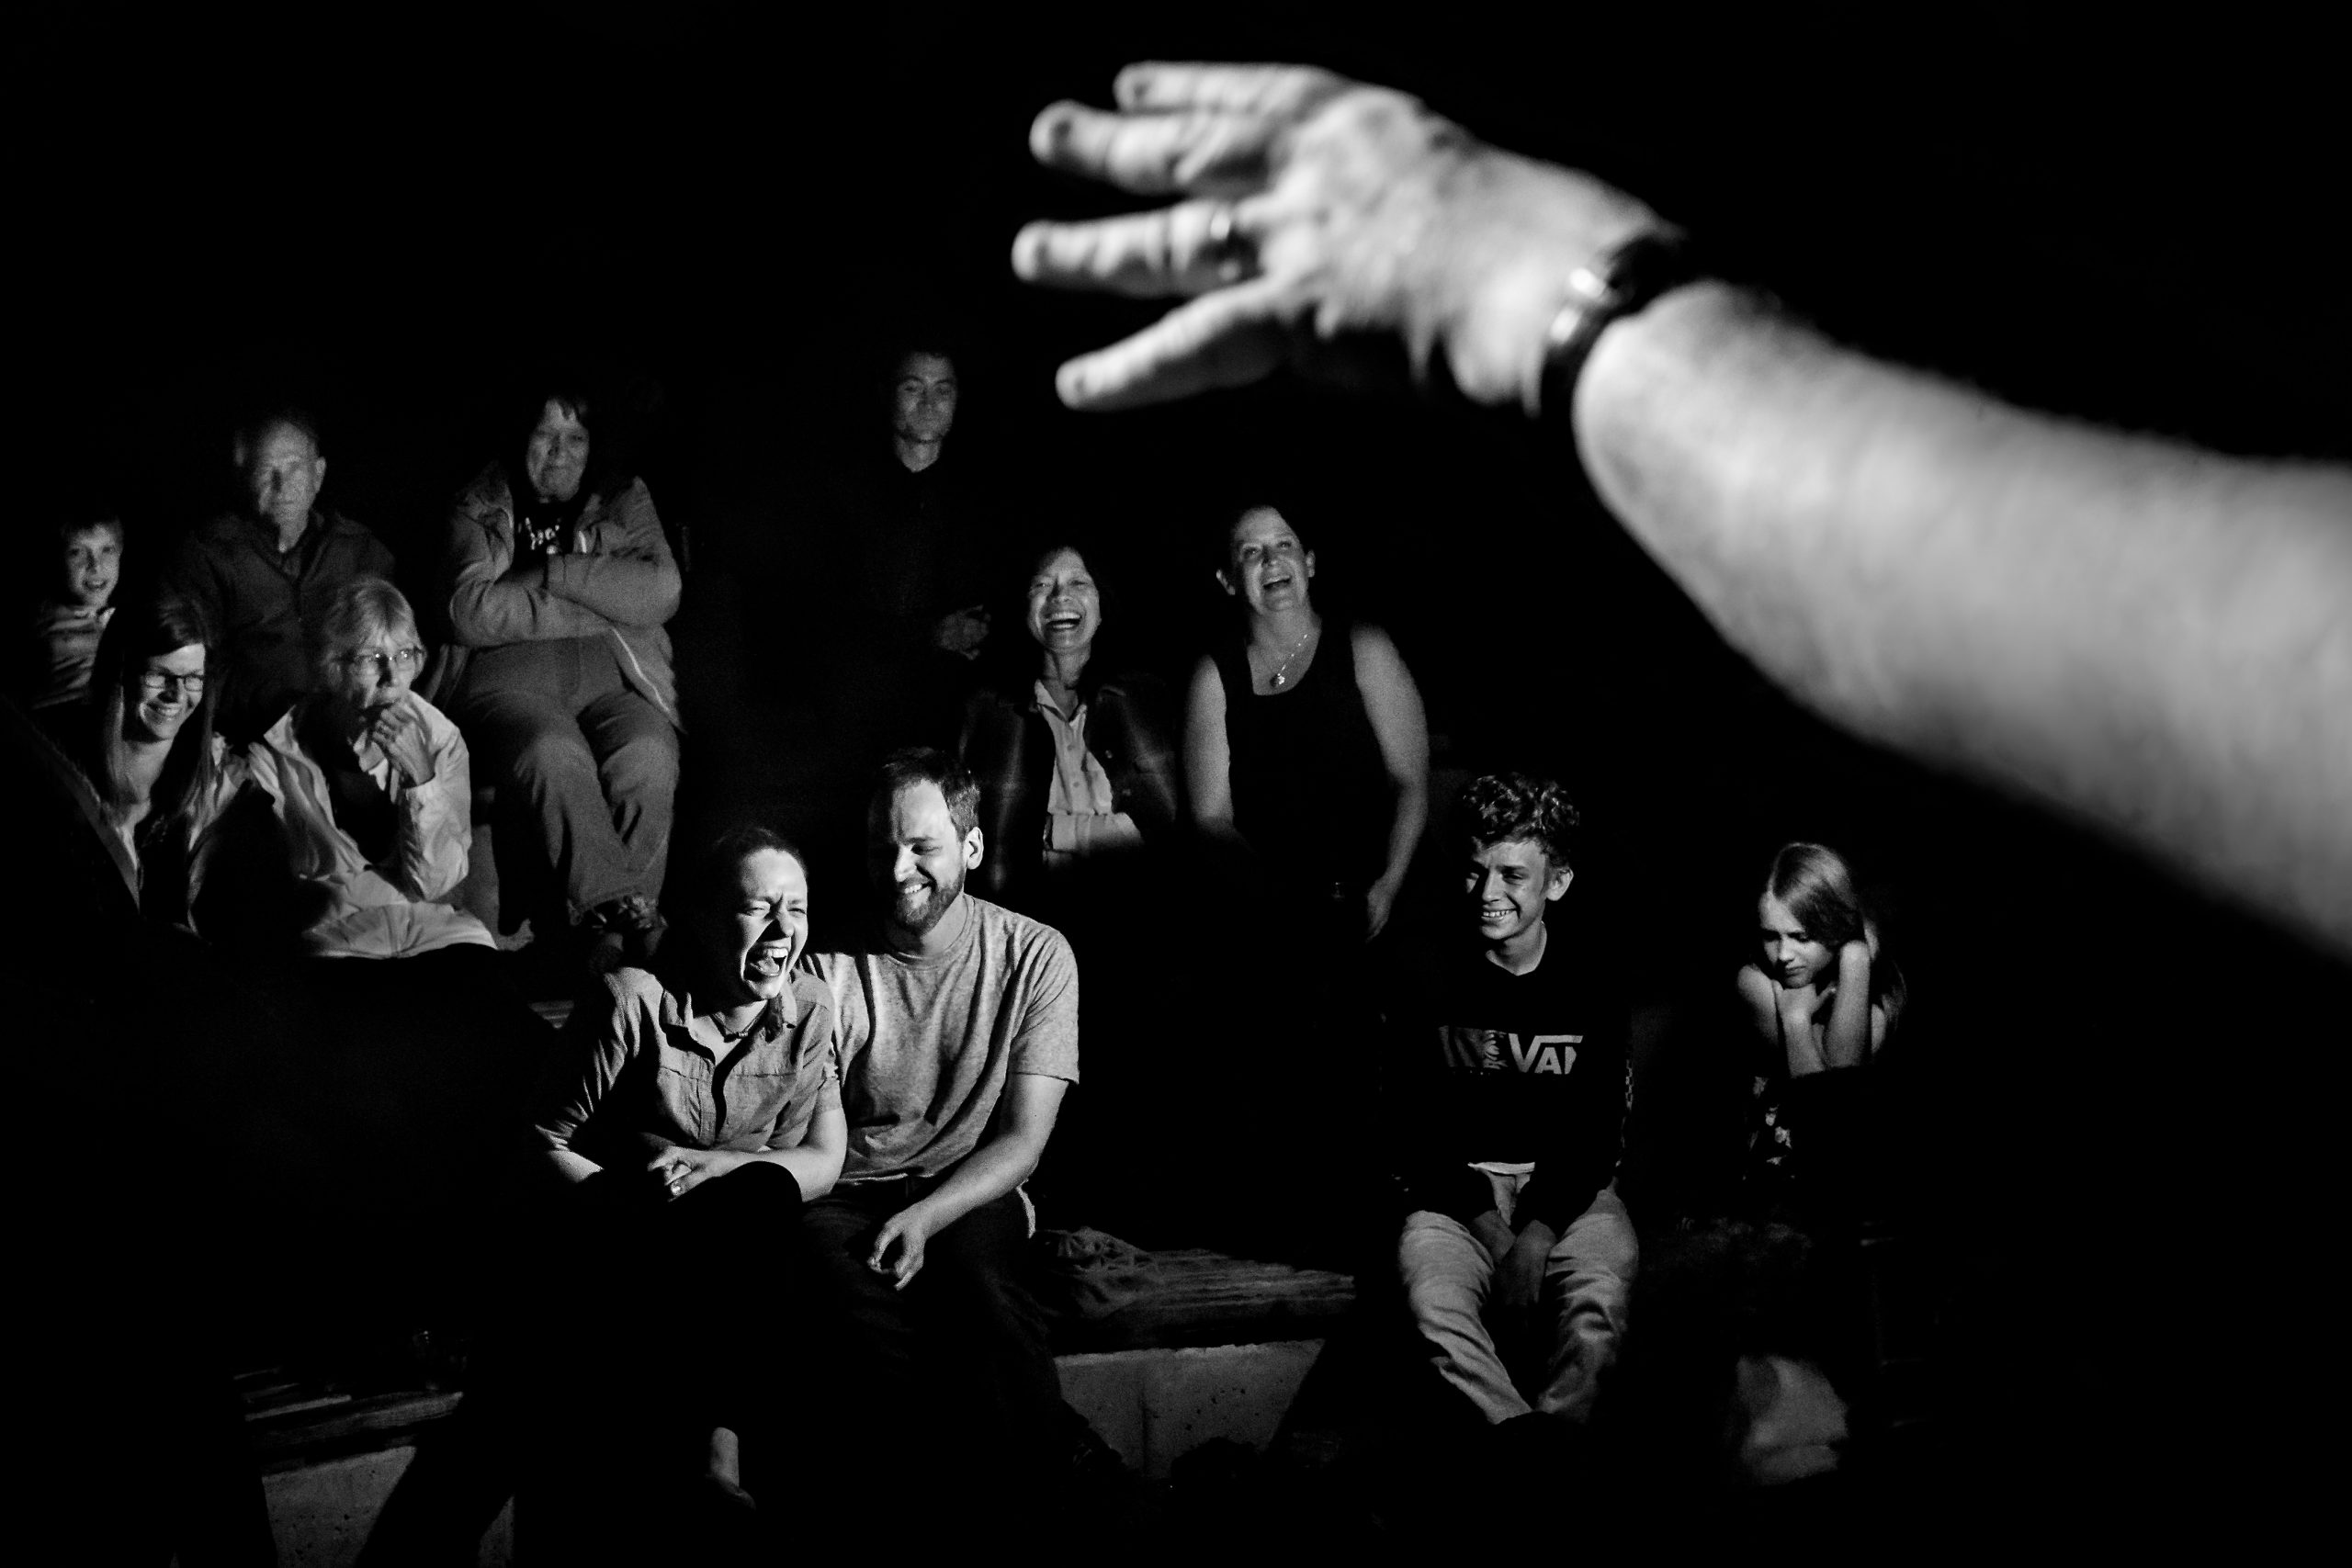 Audience laughs at ongoing performance